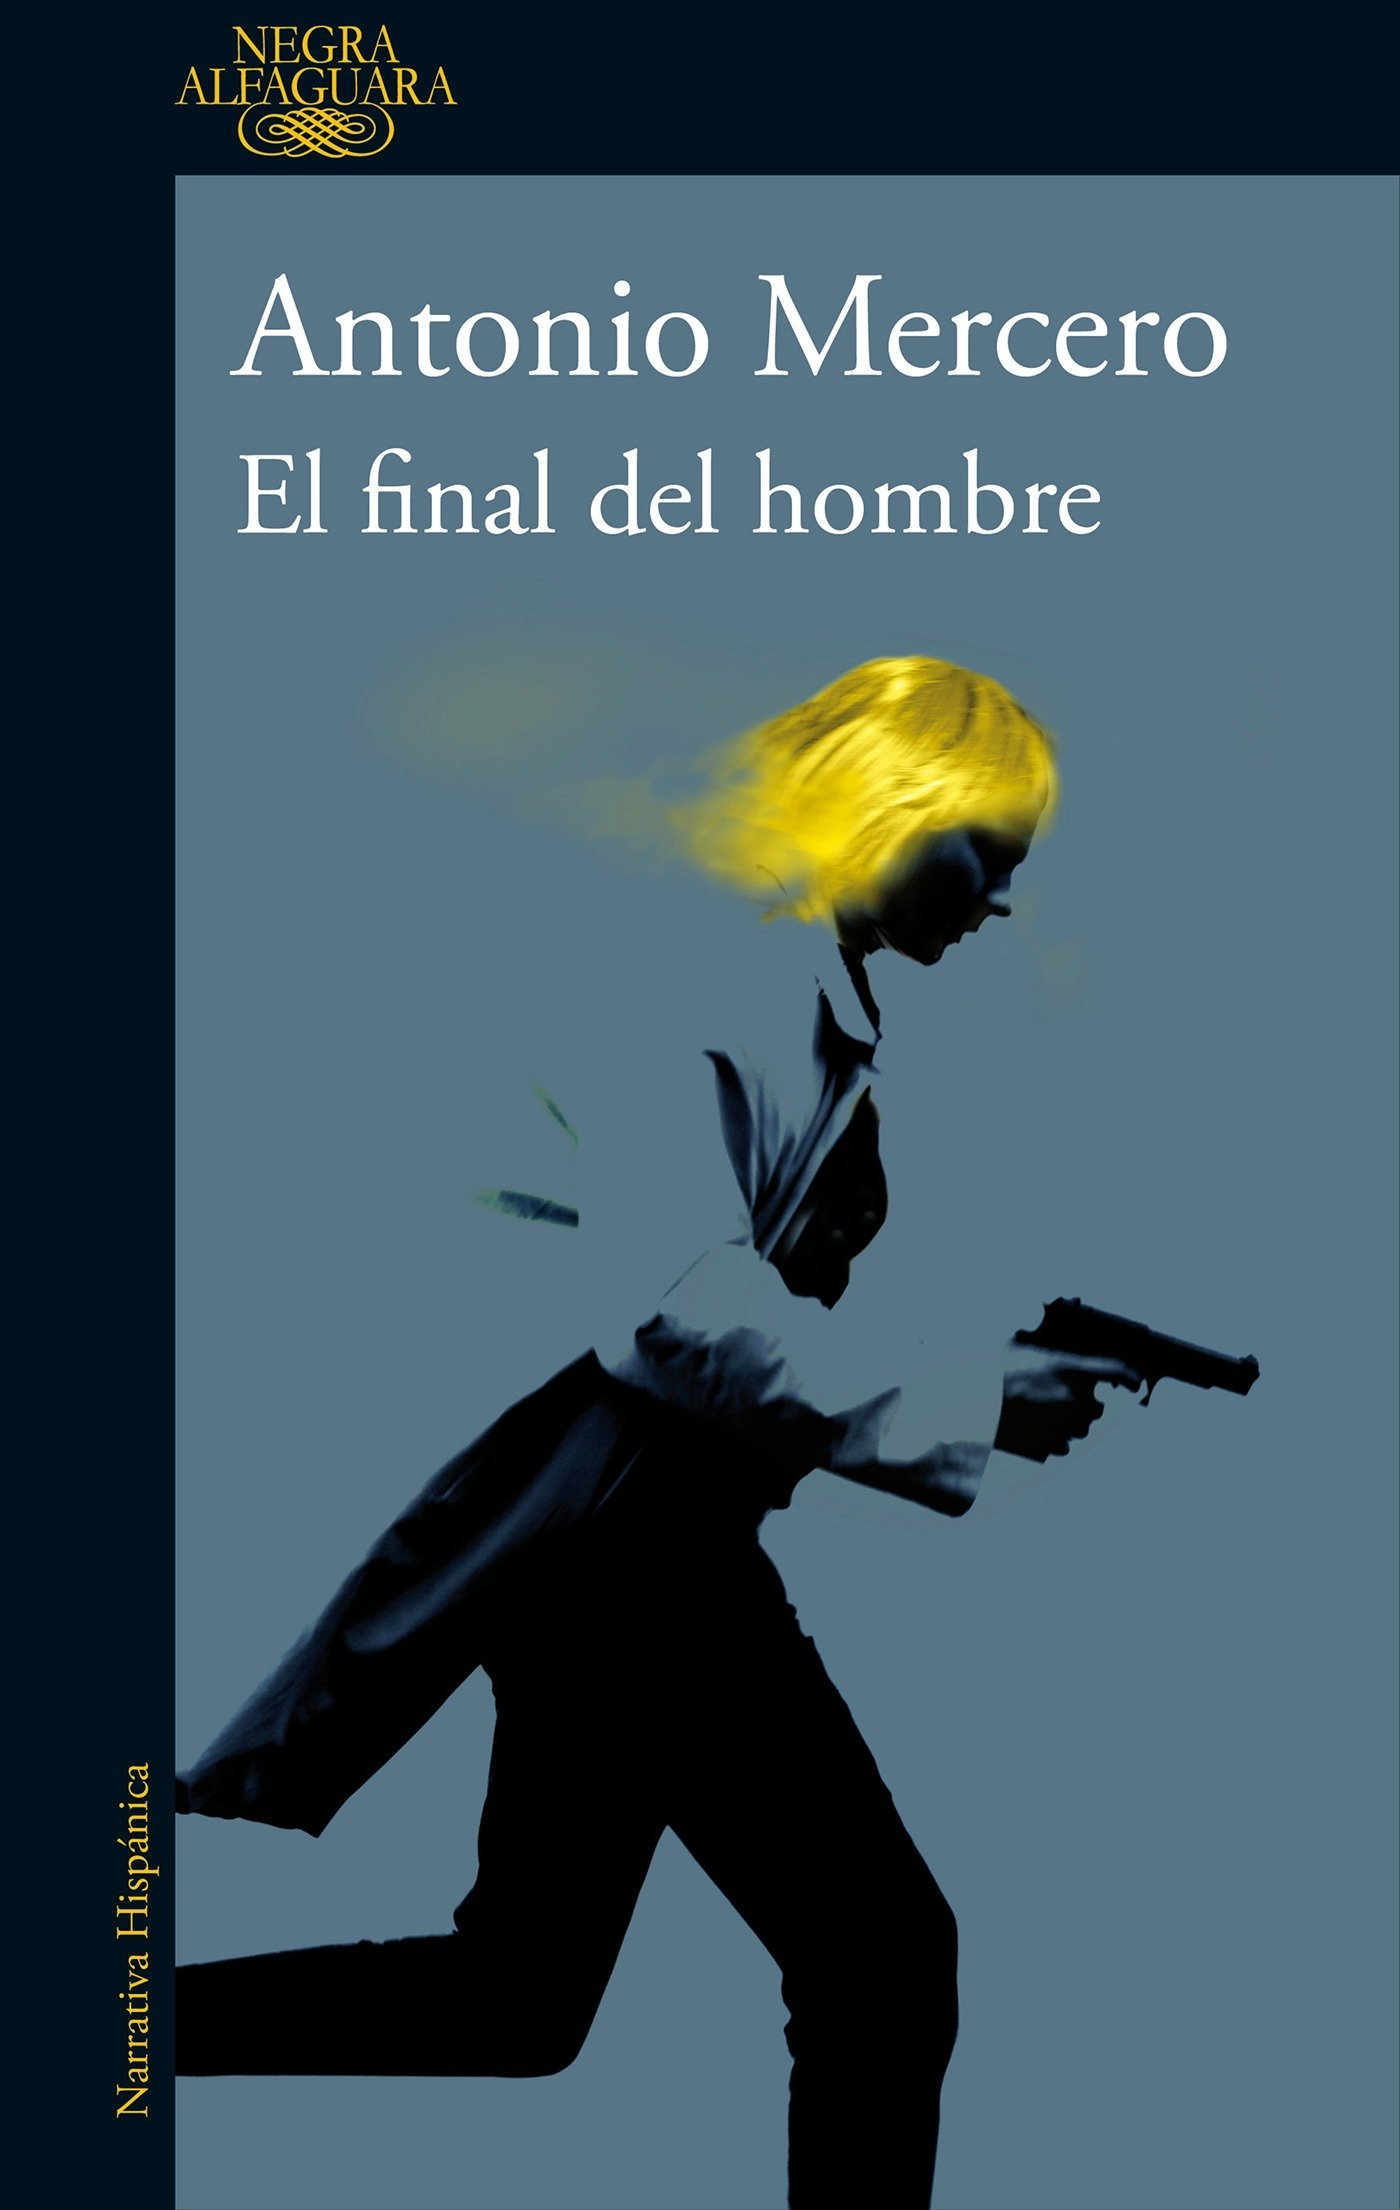 El final del hombre / The End of a Man (Spanish Edition): Antonio Mercero: 9788420430652: Amazon.com: Books